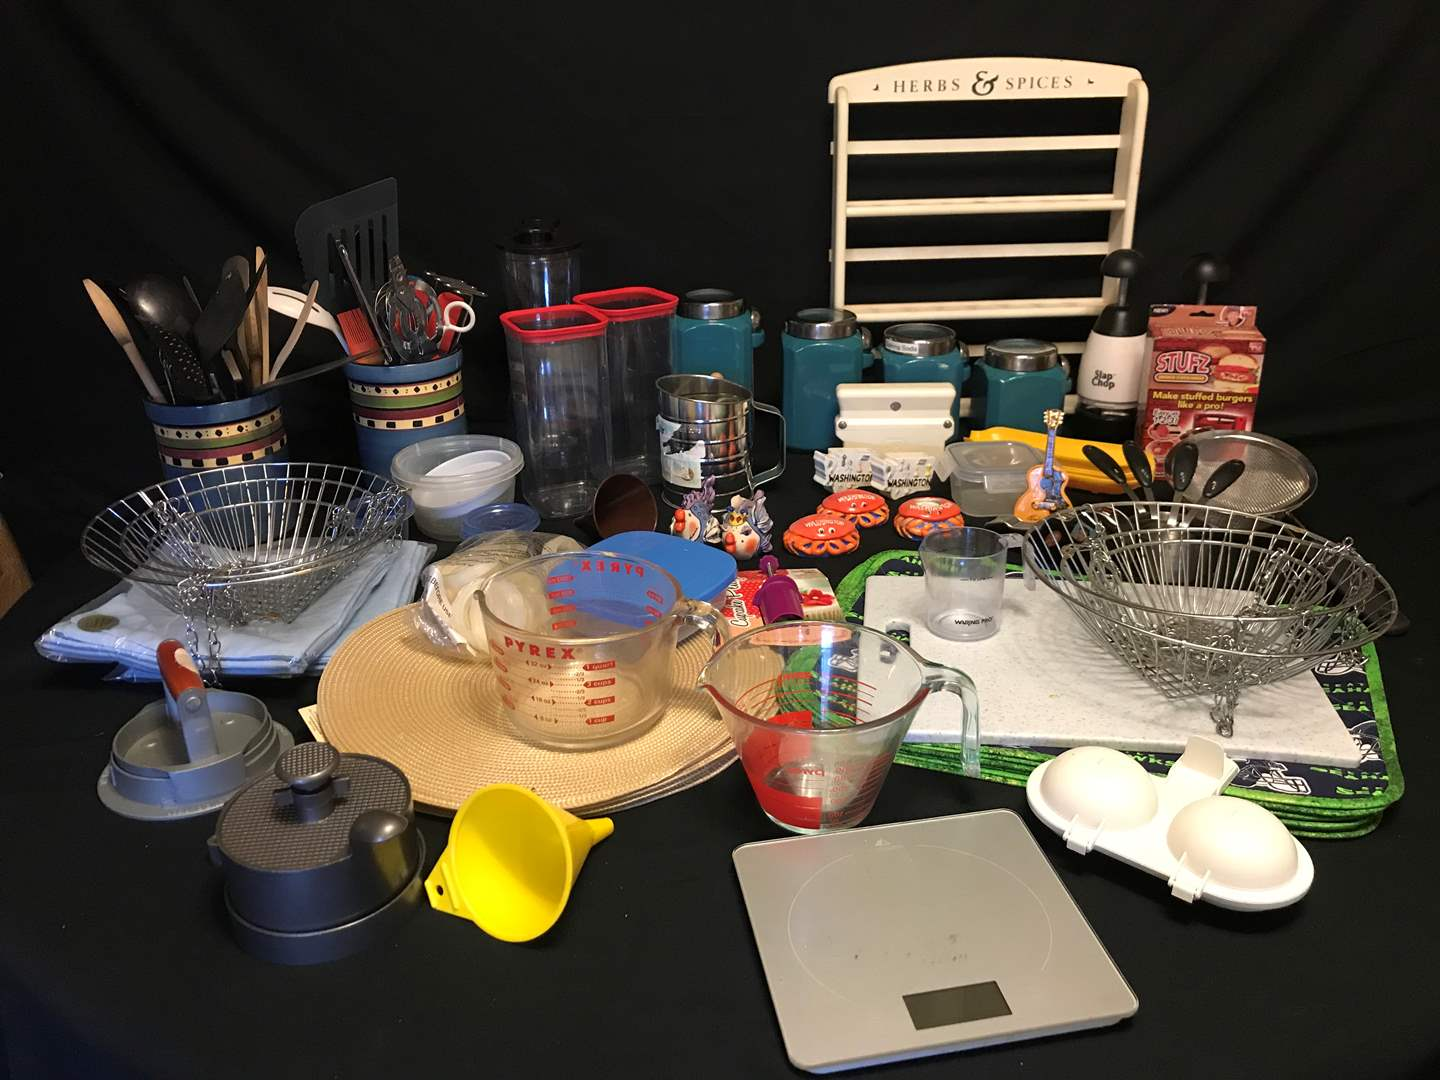 Lot # 58 - Selection of Kitchen Items: Canisters, Spatulas, Place Mats, Measuring Cups, Salt & Pepper Shakers & More.. (main image)